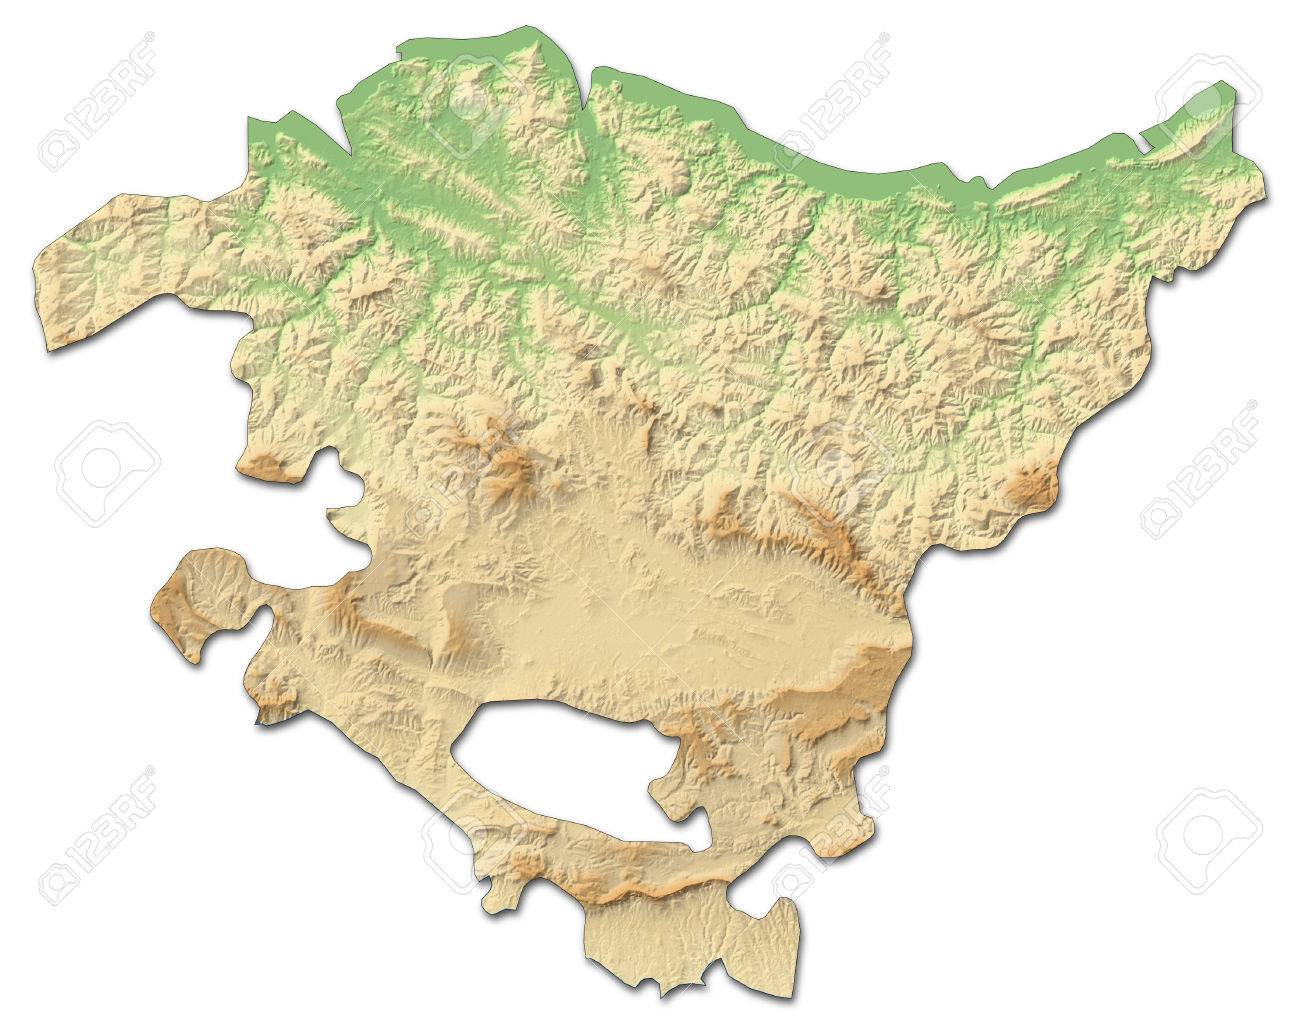 Relief Map Of Basque Country A Province Of Spain With Shaded